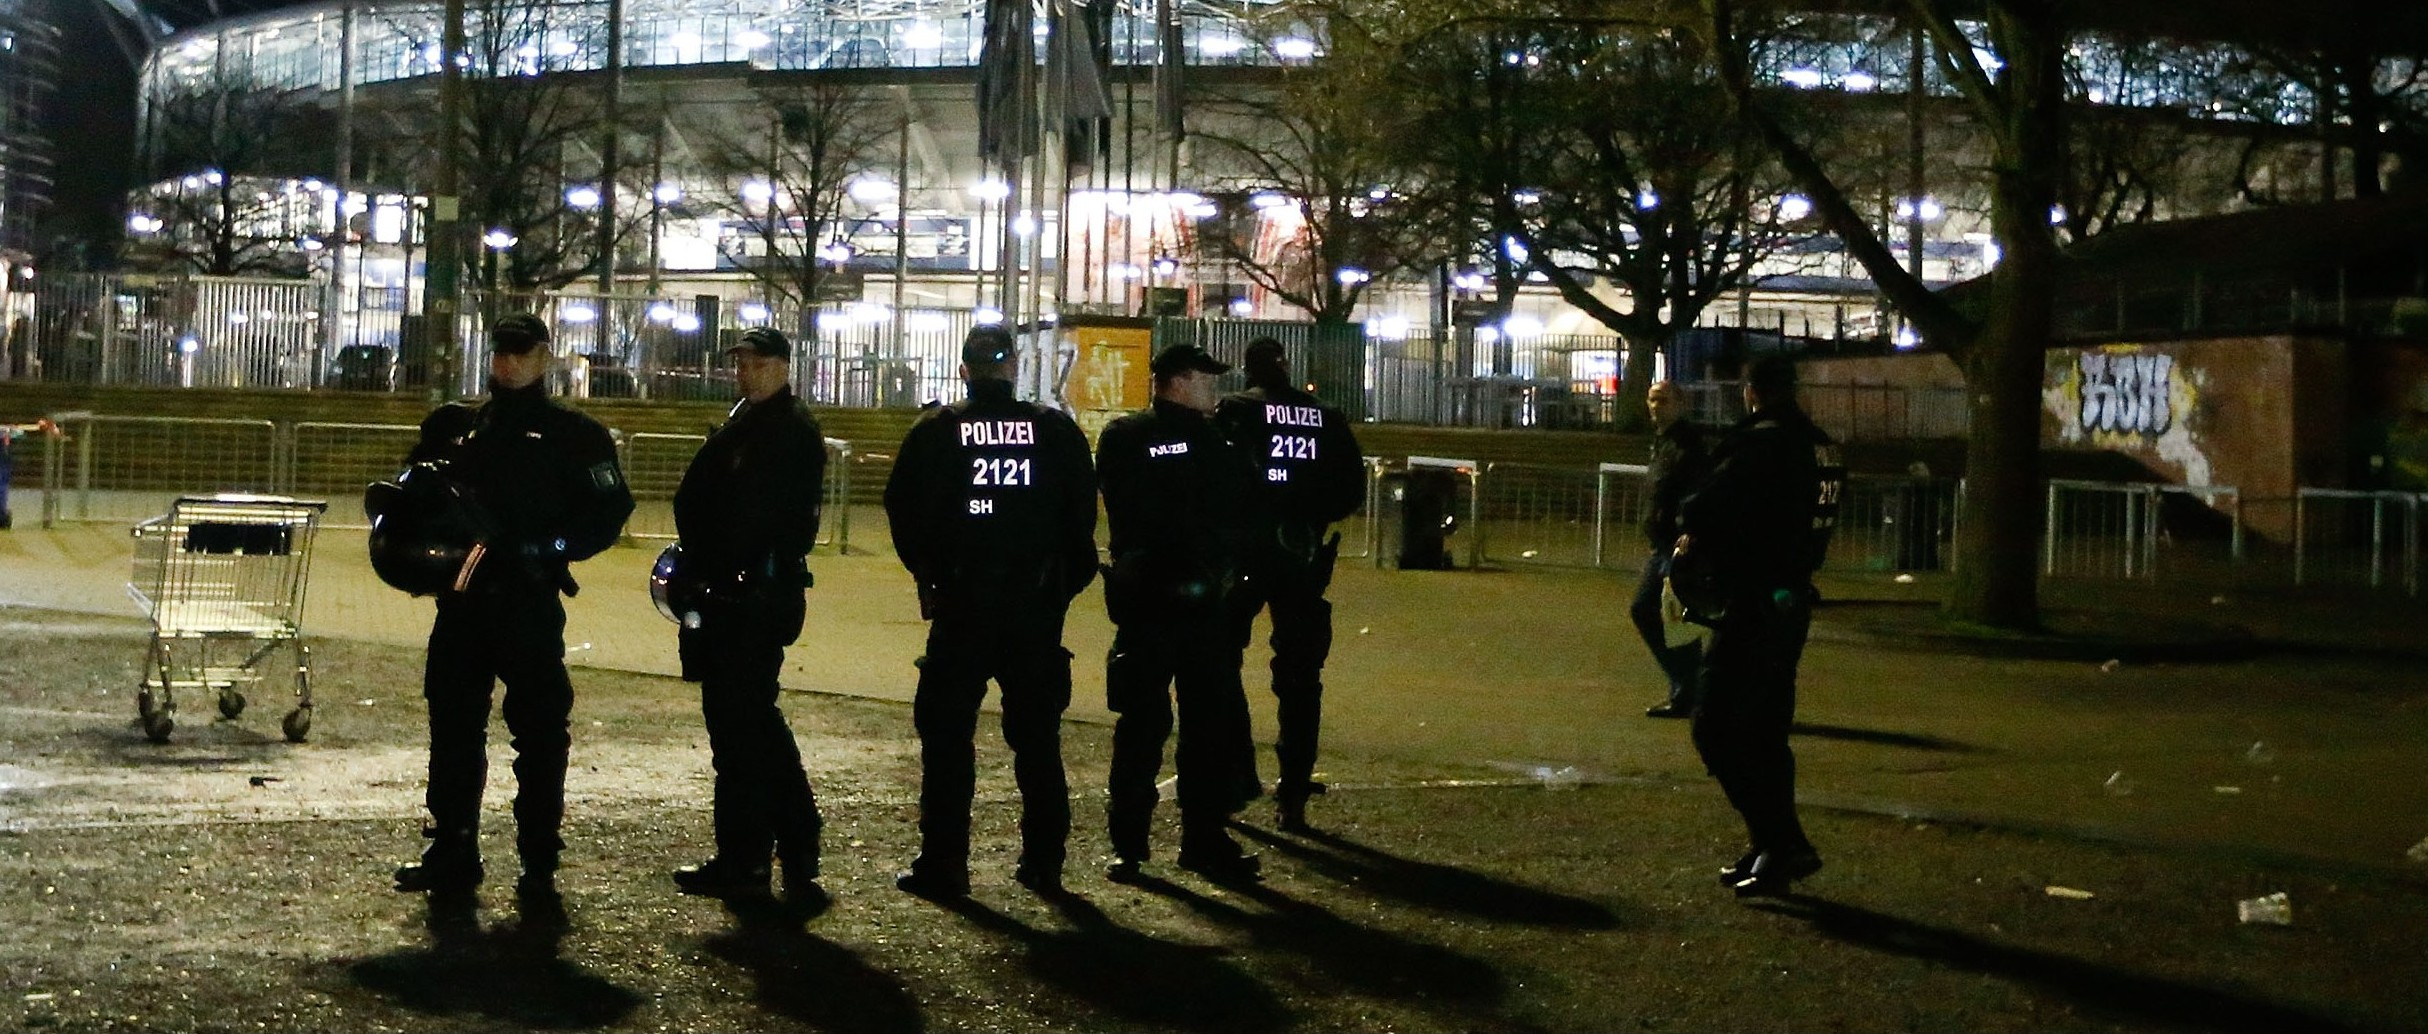 Football Soccer - Germany vs Netherlands - International Friendly - HDI Arena, Hanover, Germany - 17/11/15. Heavy armed Police stand outside the stadium after the match was called off by police due to security reasons.    REUTERS/Morris Mac Matzen  TPX IMAGES OF THE DAY - RTS7LWM